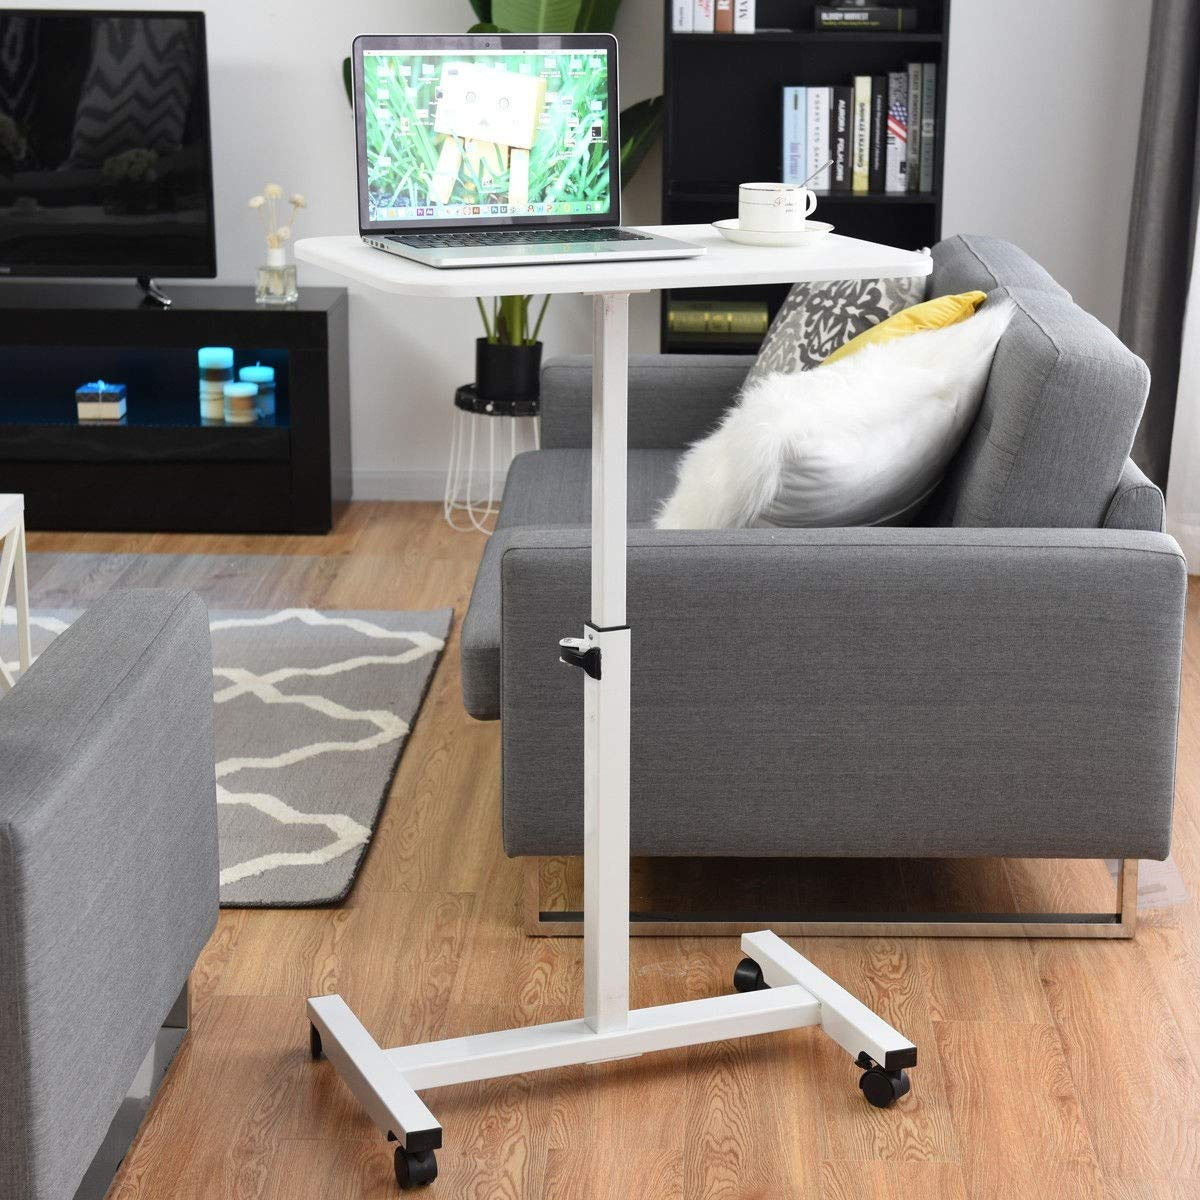 Adjustable Height Rolling Mobile Laptop Cart Stand Desk